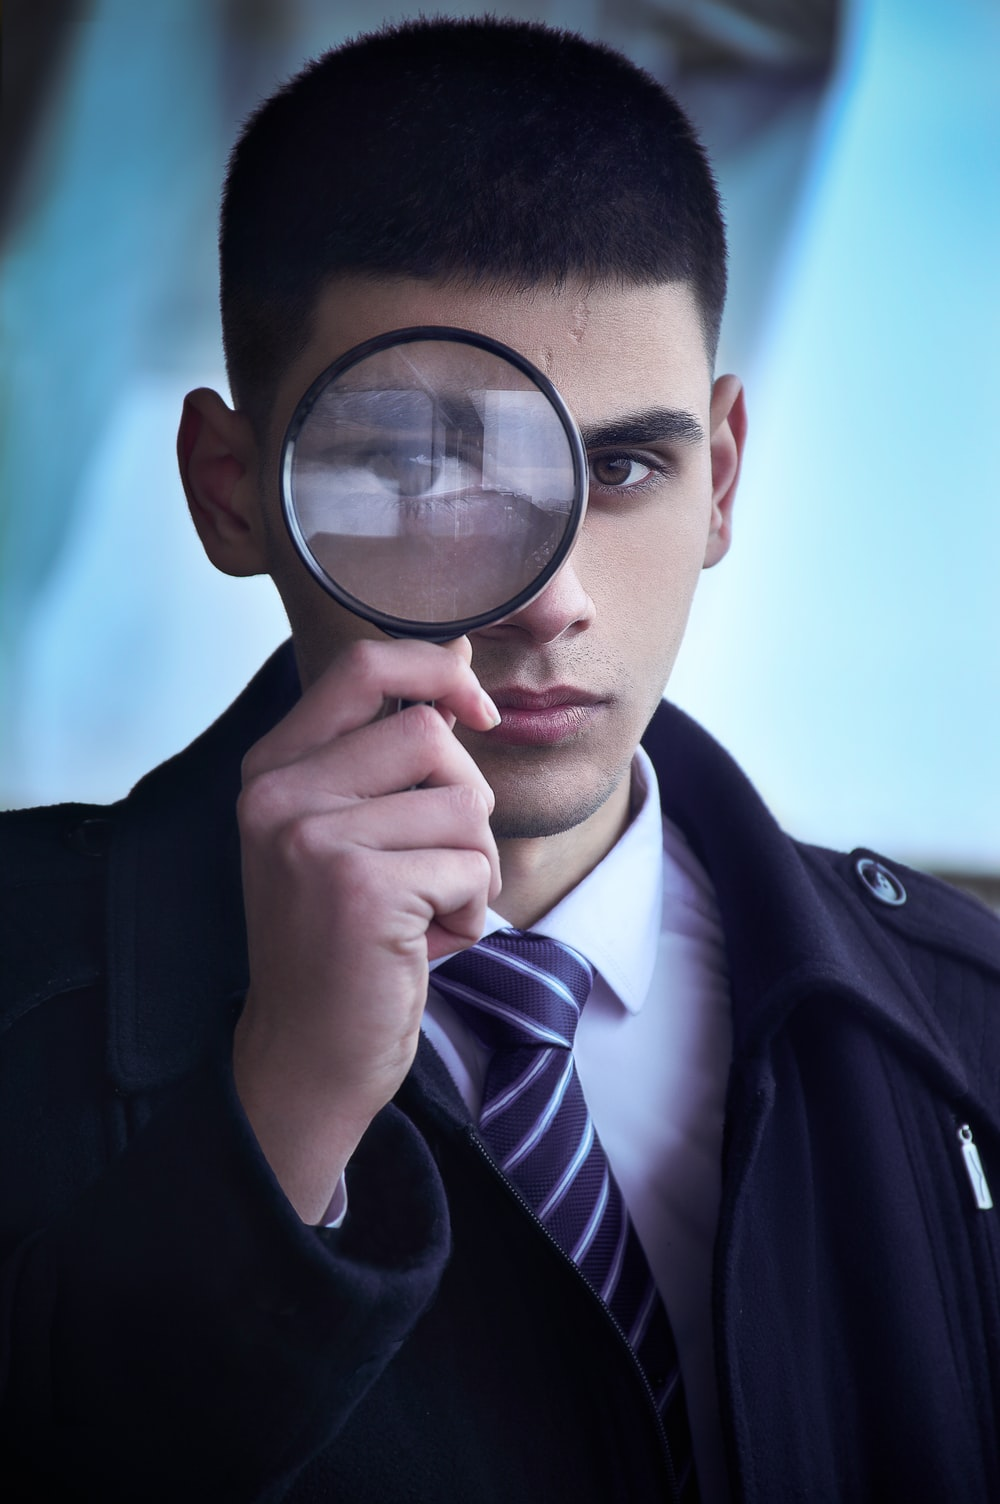 man in black suit holding magnifying glass